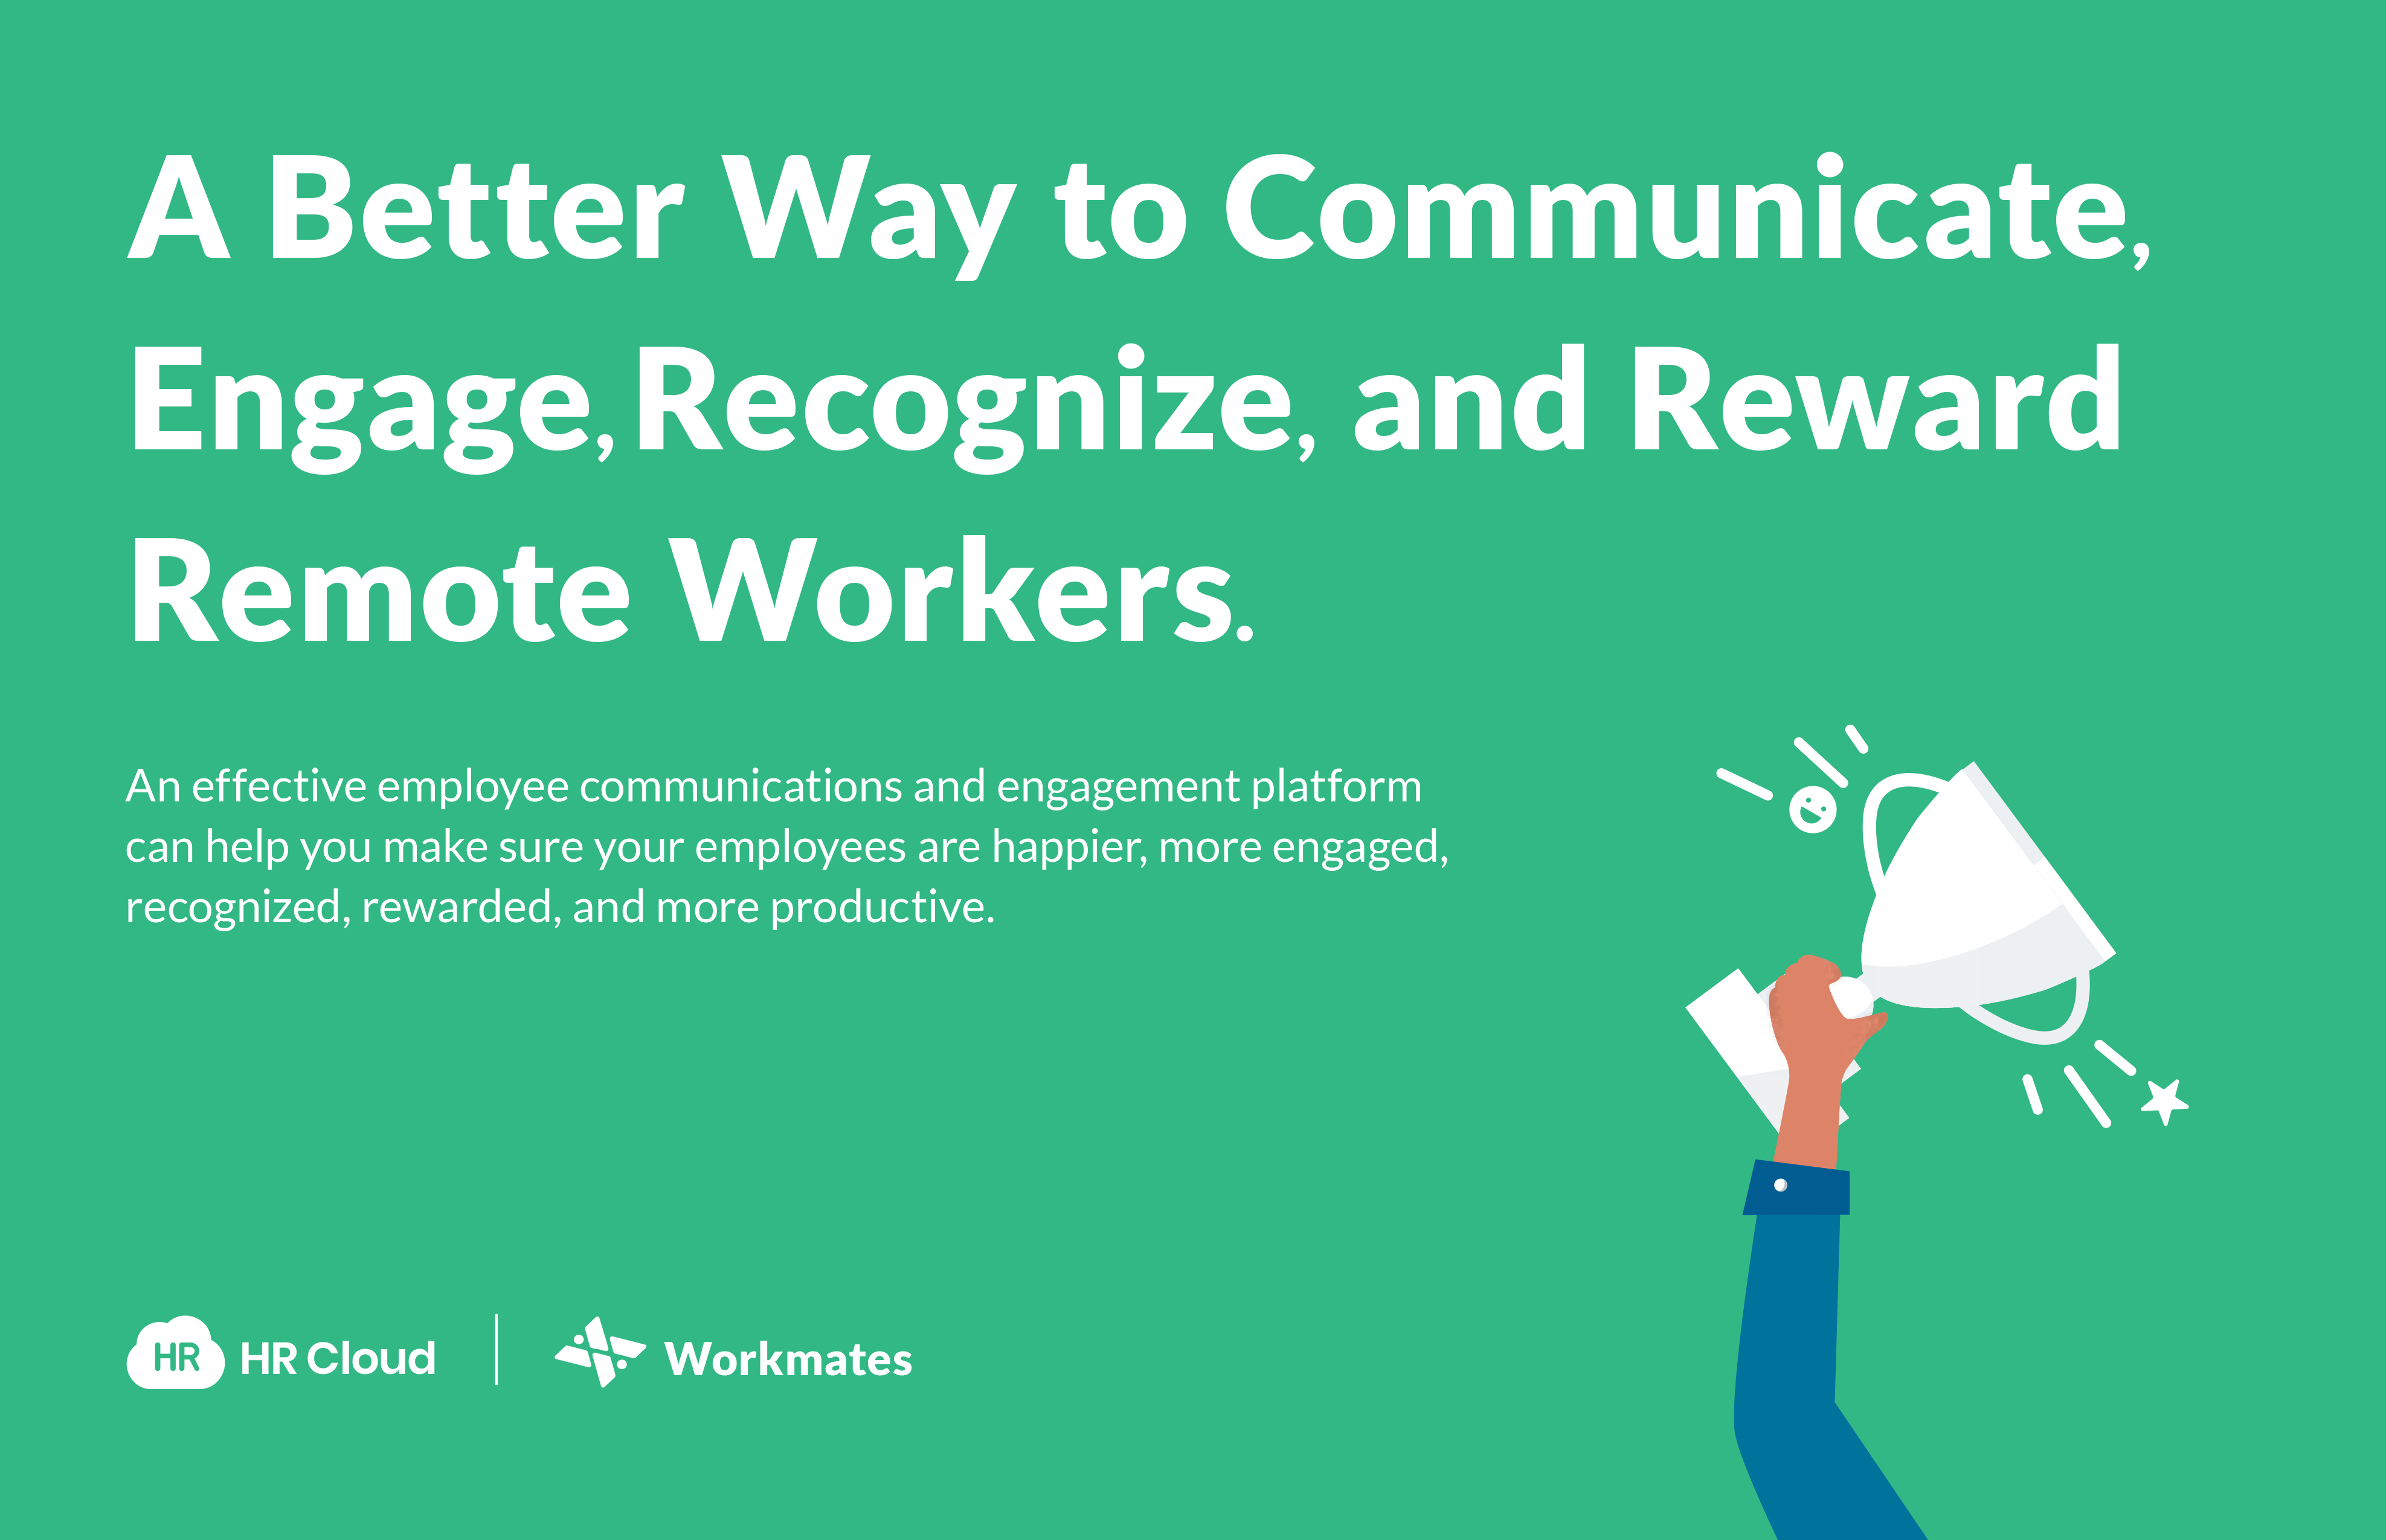 Communicate, Engage, Recognize and Reward Workers | HR Cloud